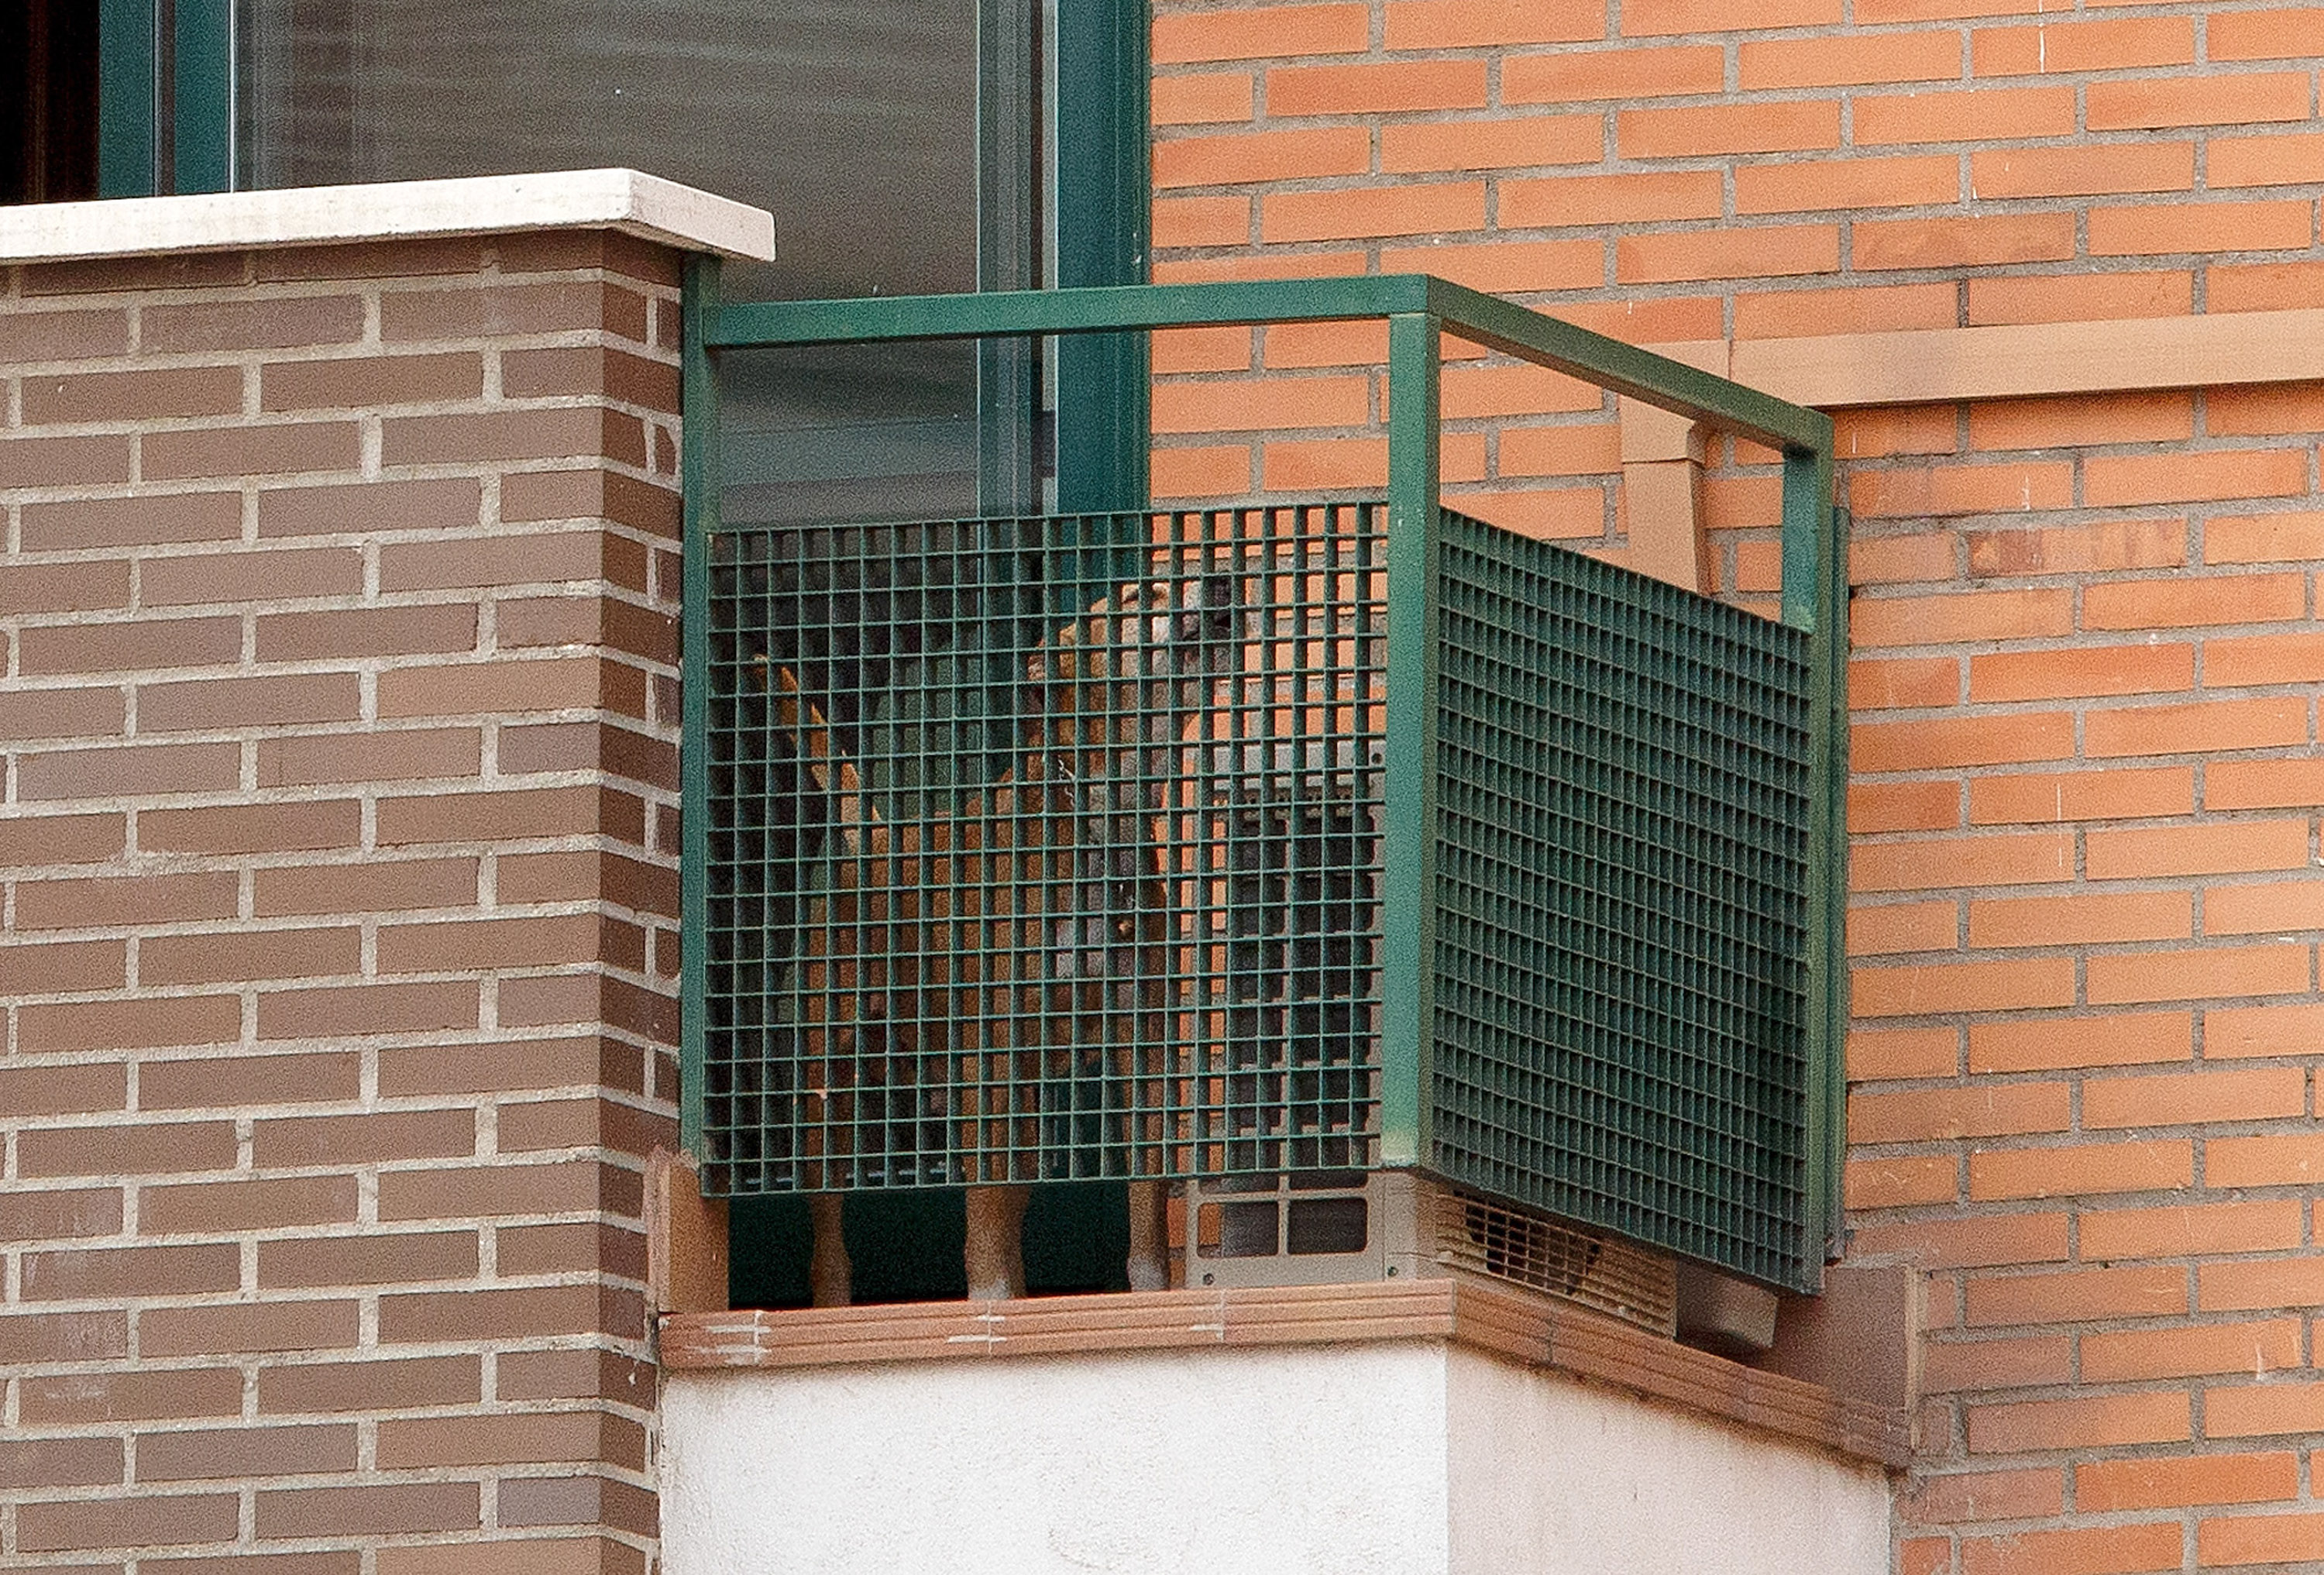 'Excalibur' barks from the balcony of the private residence for the Spanish nurse who has tested positive for the Ebola virus on October 8, 2014 in Alcorcon, Spain.